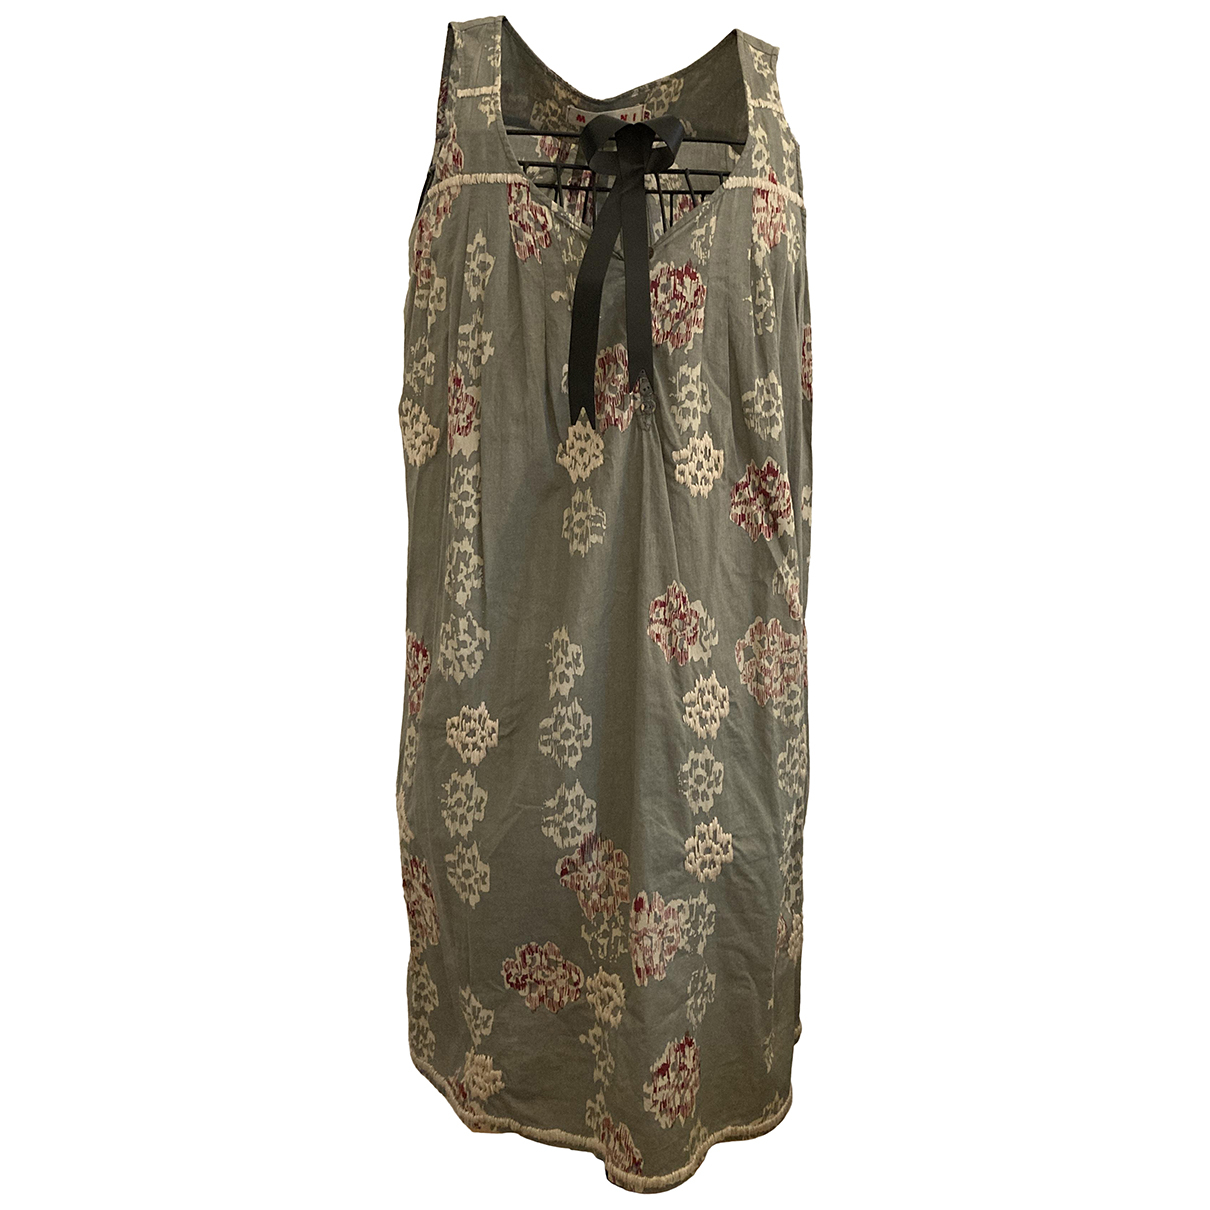 Marni N Anthracite Cotton dress for Women 38 IT